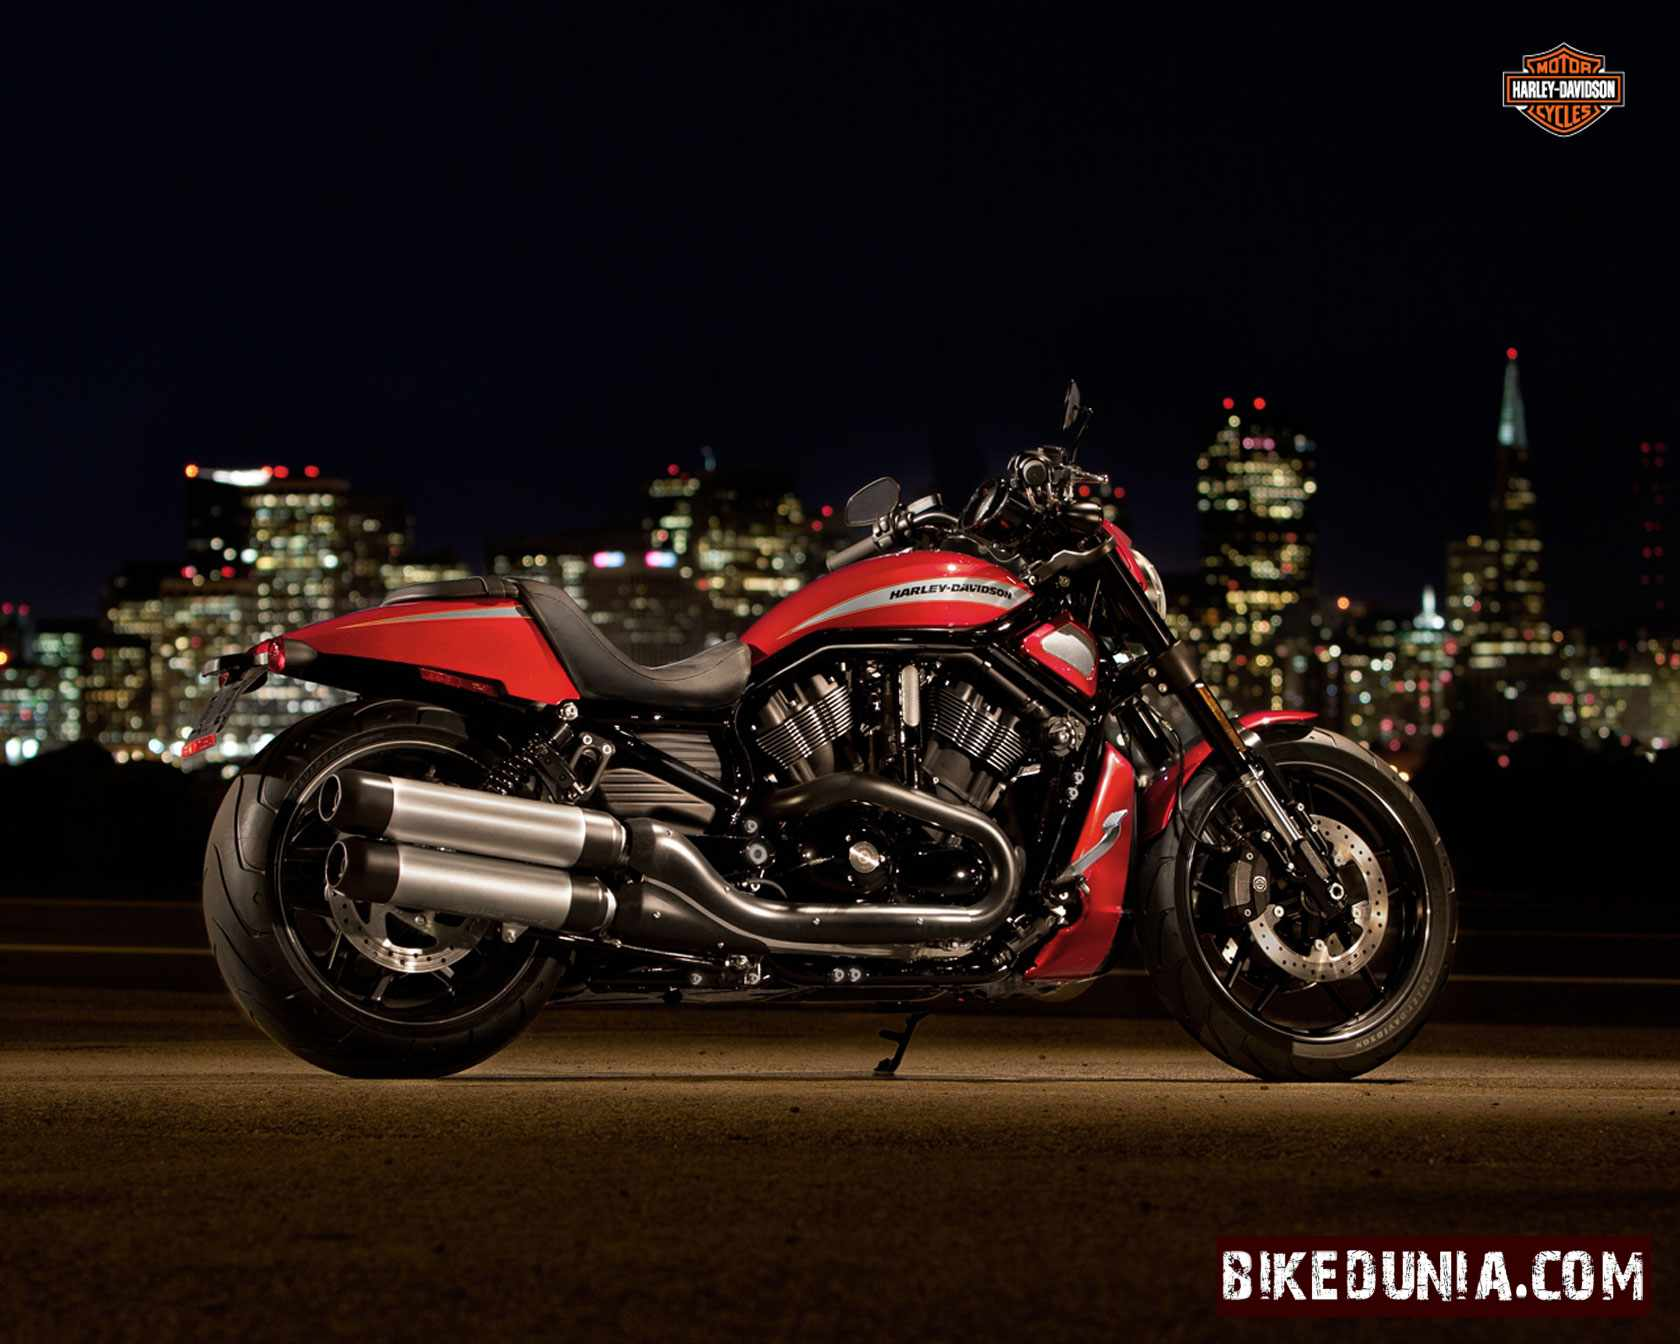 Harley Davidson V-ROD VRSCDX Night Rod Special